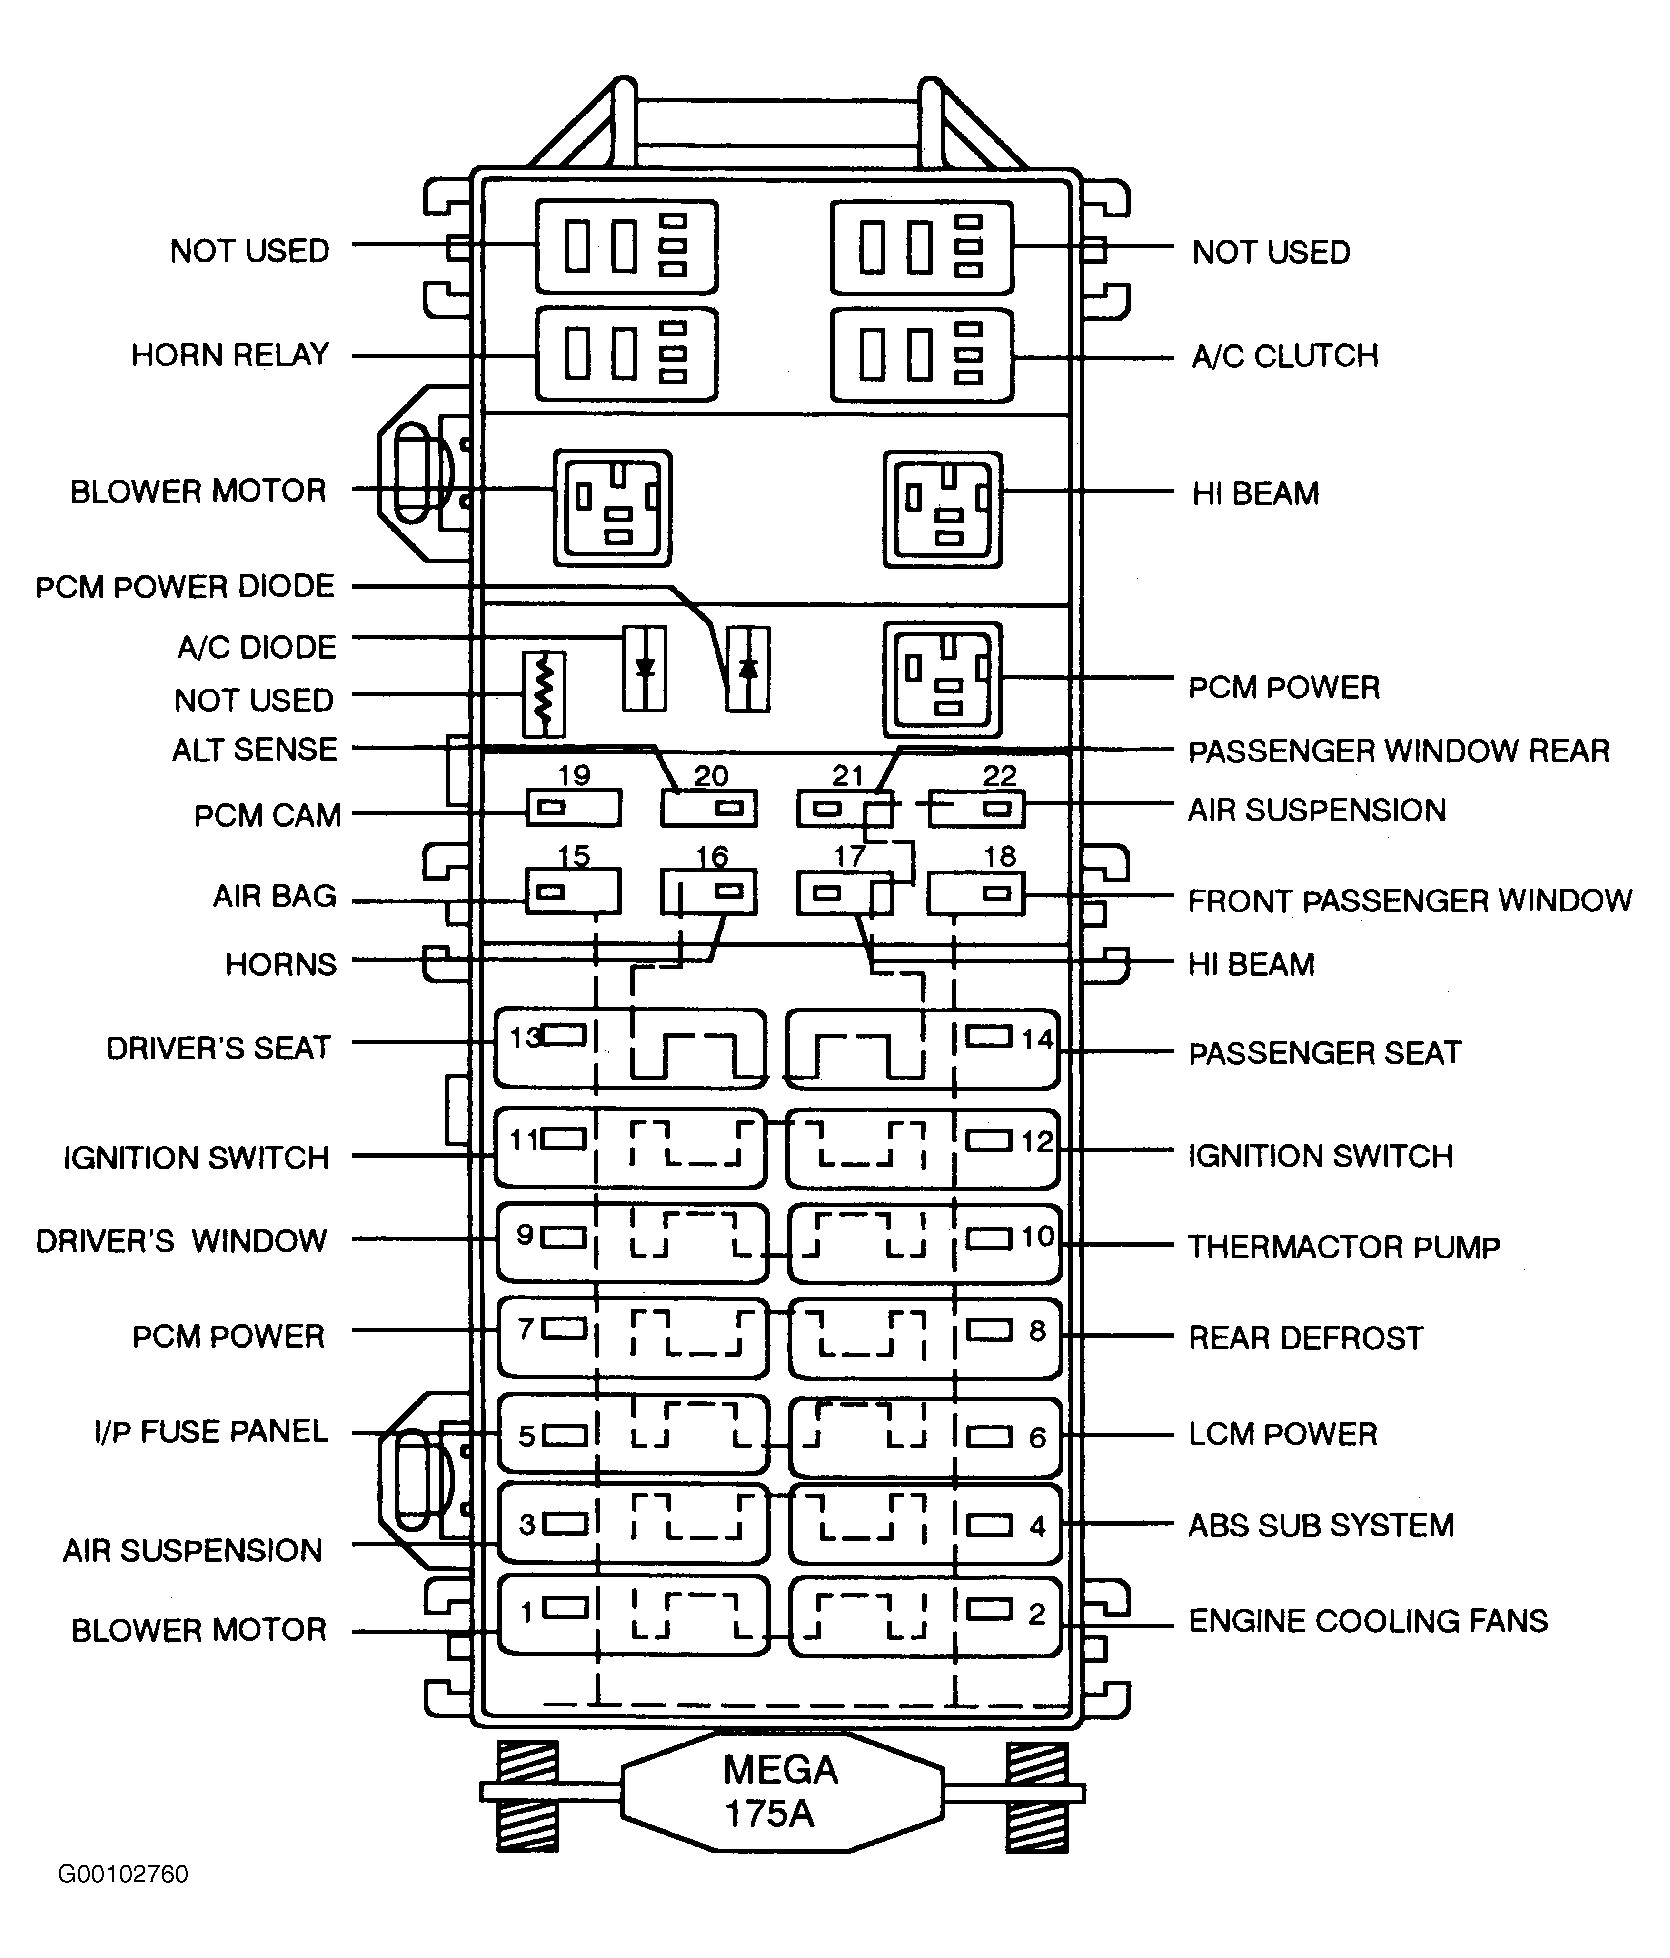 2000 lincoln town car fuse box diagram